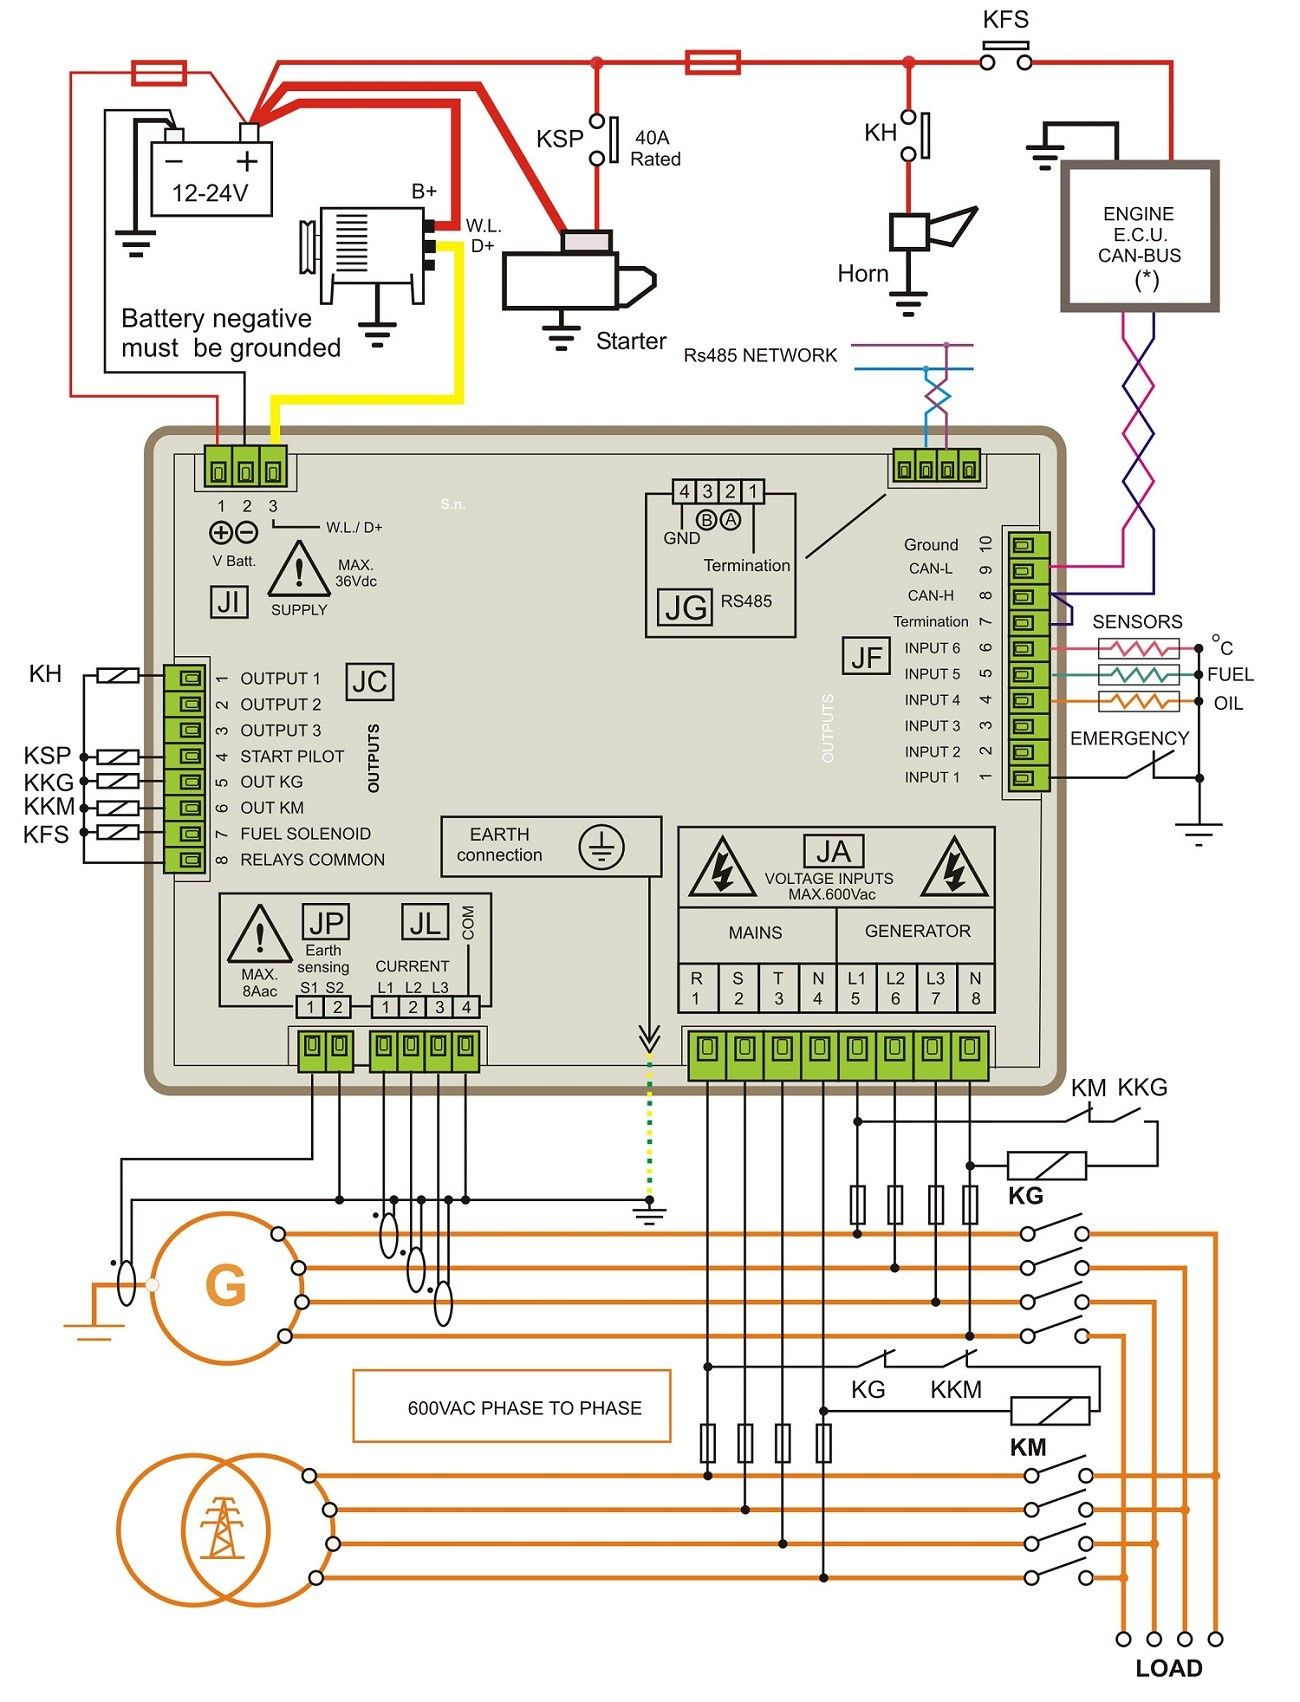 Unique Wiring Diagram for Olympian Generator #diagram